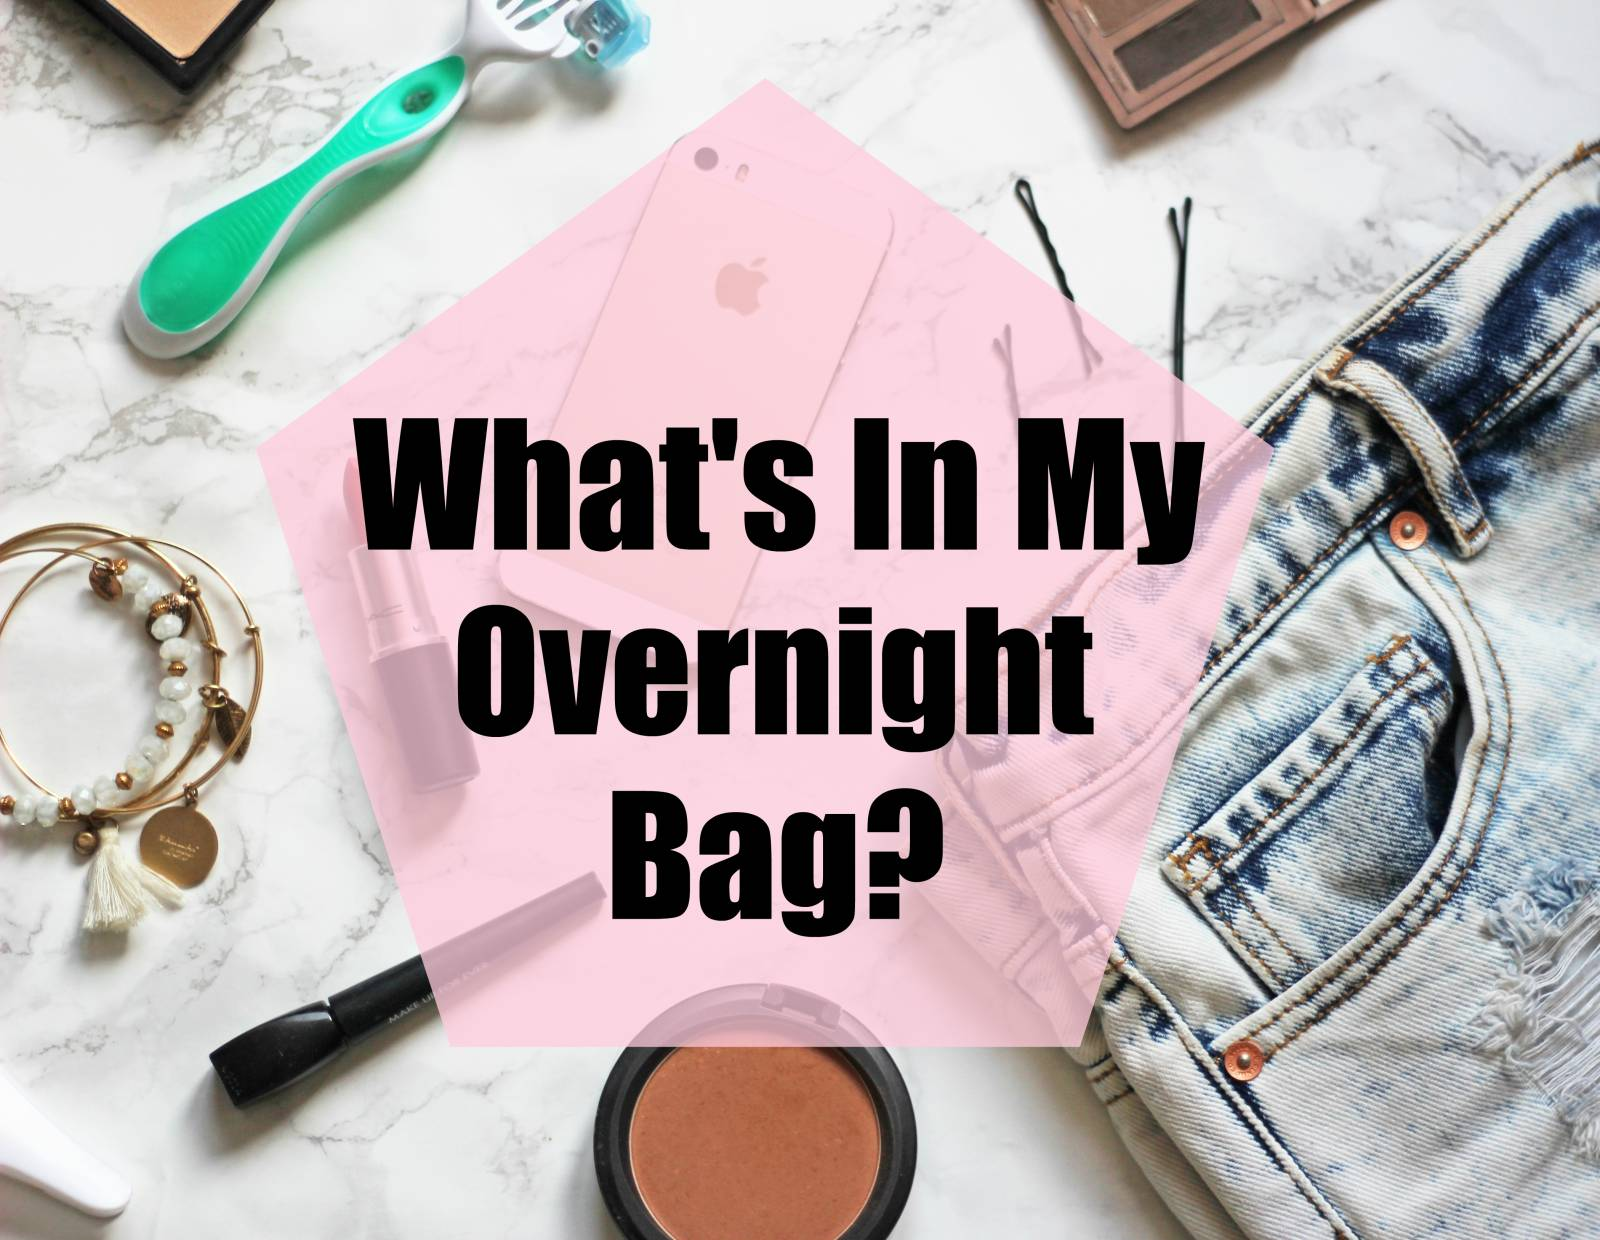 What's In My Overnight Bag?